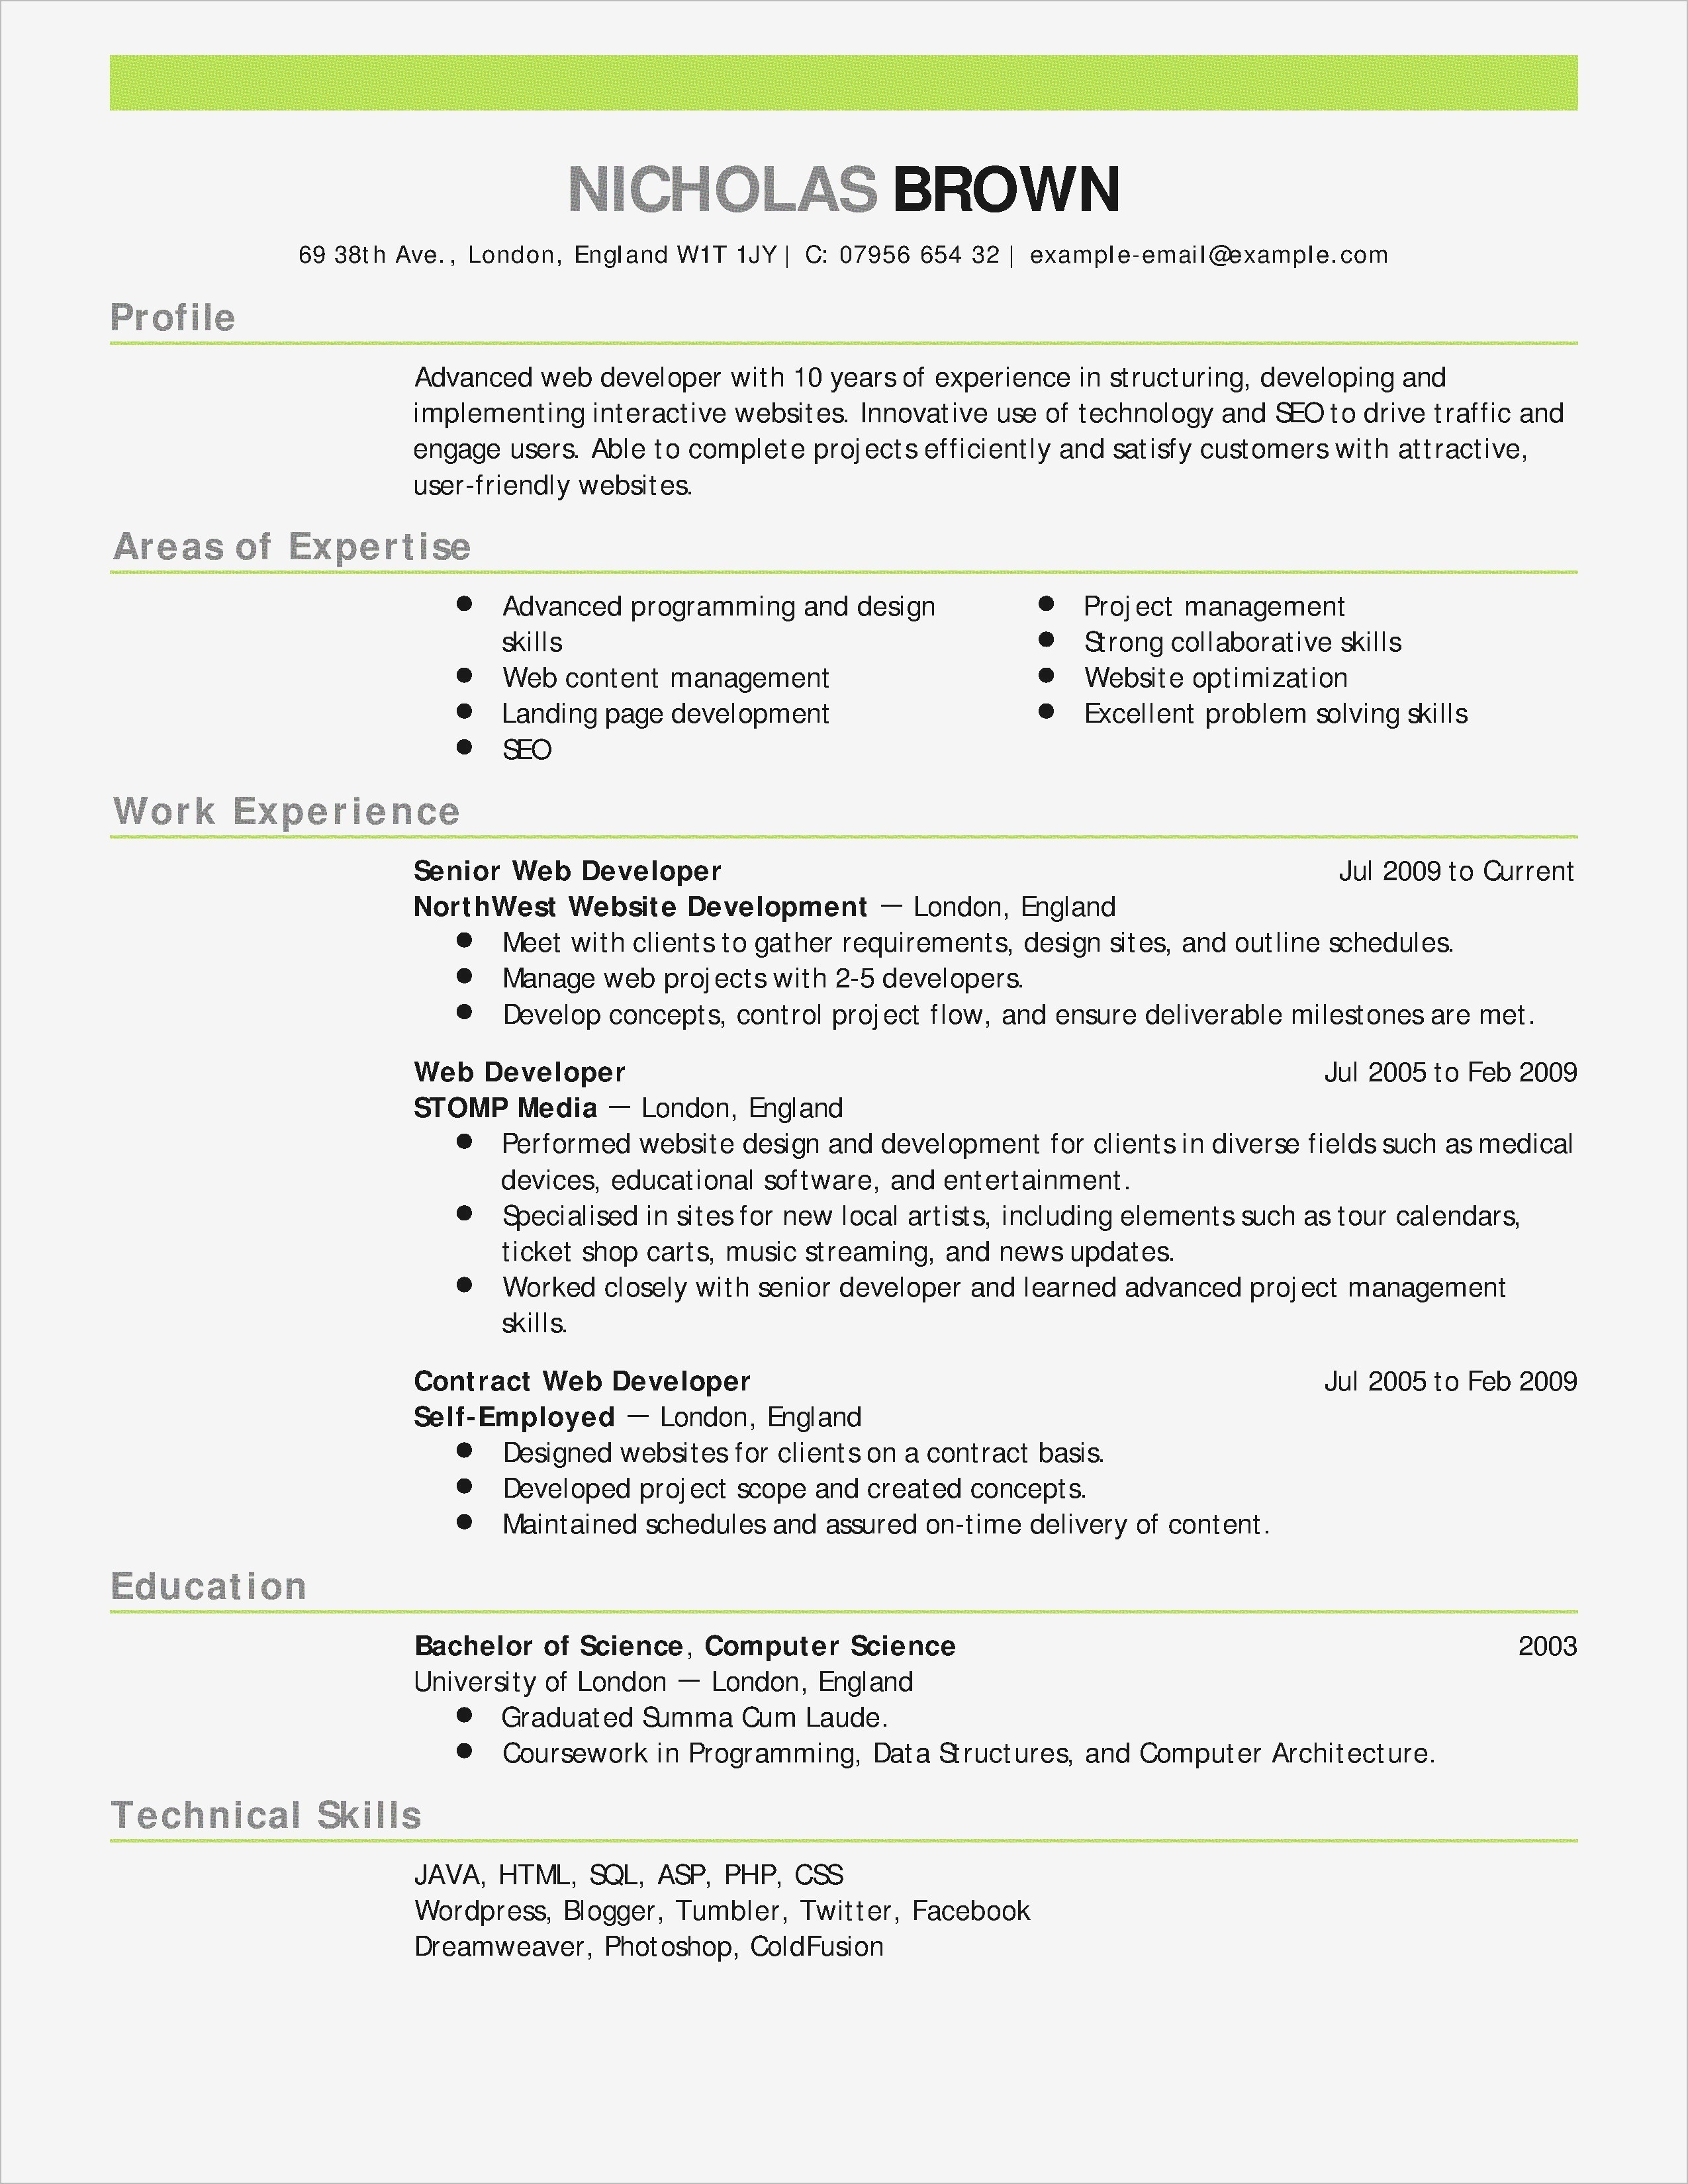 word 2003 resume template example-Elegant Free Resume Template for Word 7-a